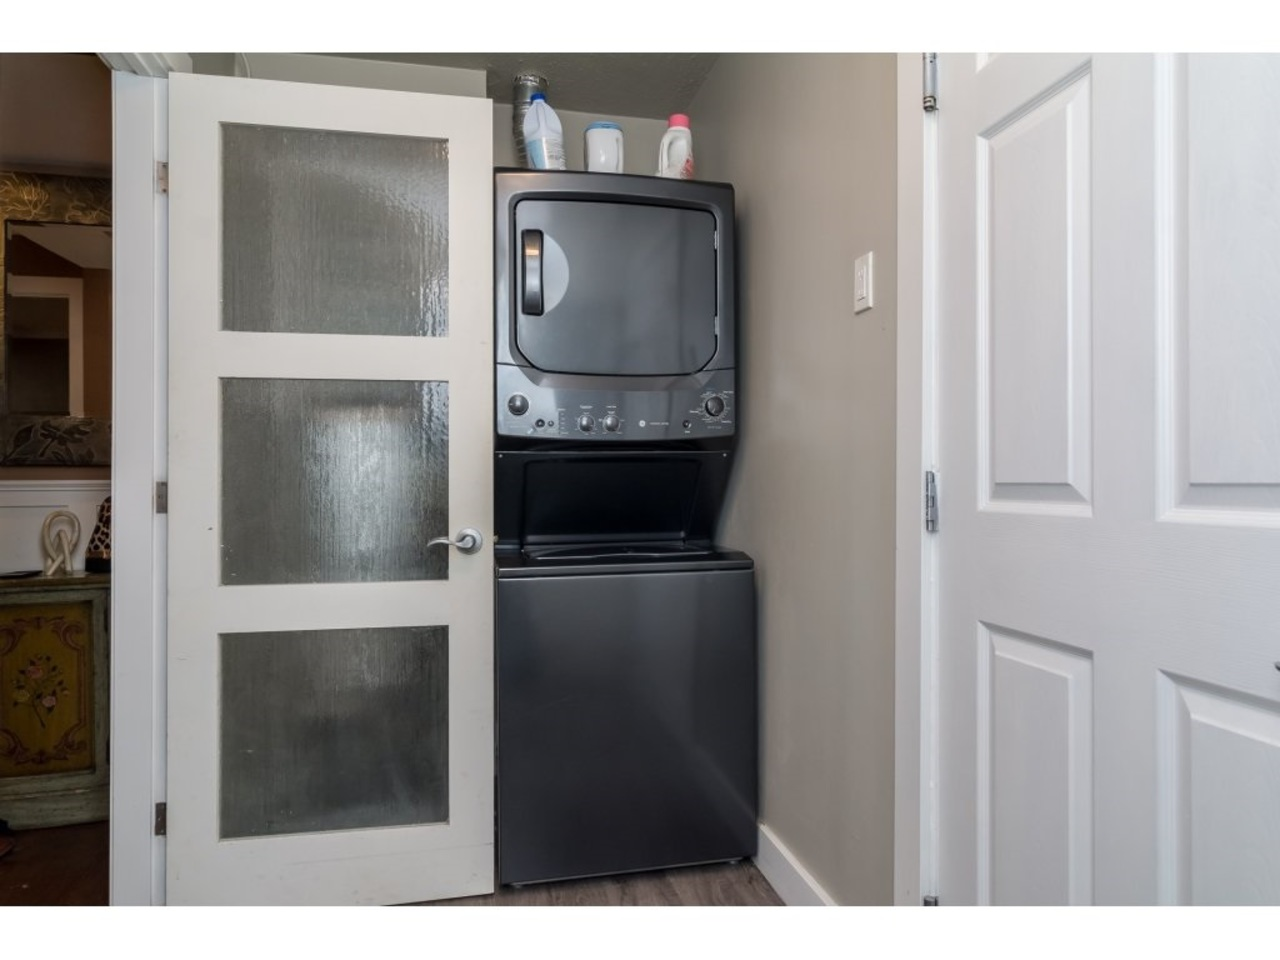 Laundry Room -Listed by Solon REM, Top Langley & Fraser Valley Realtor  at 7498 116a, Scottsdale, N. Delta